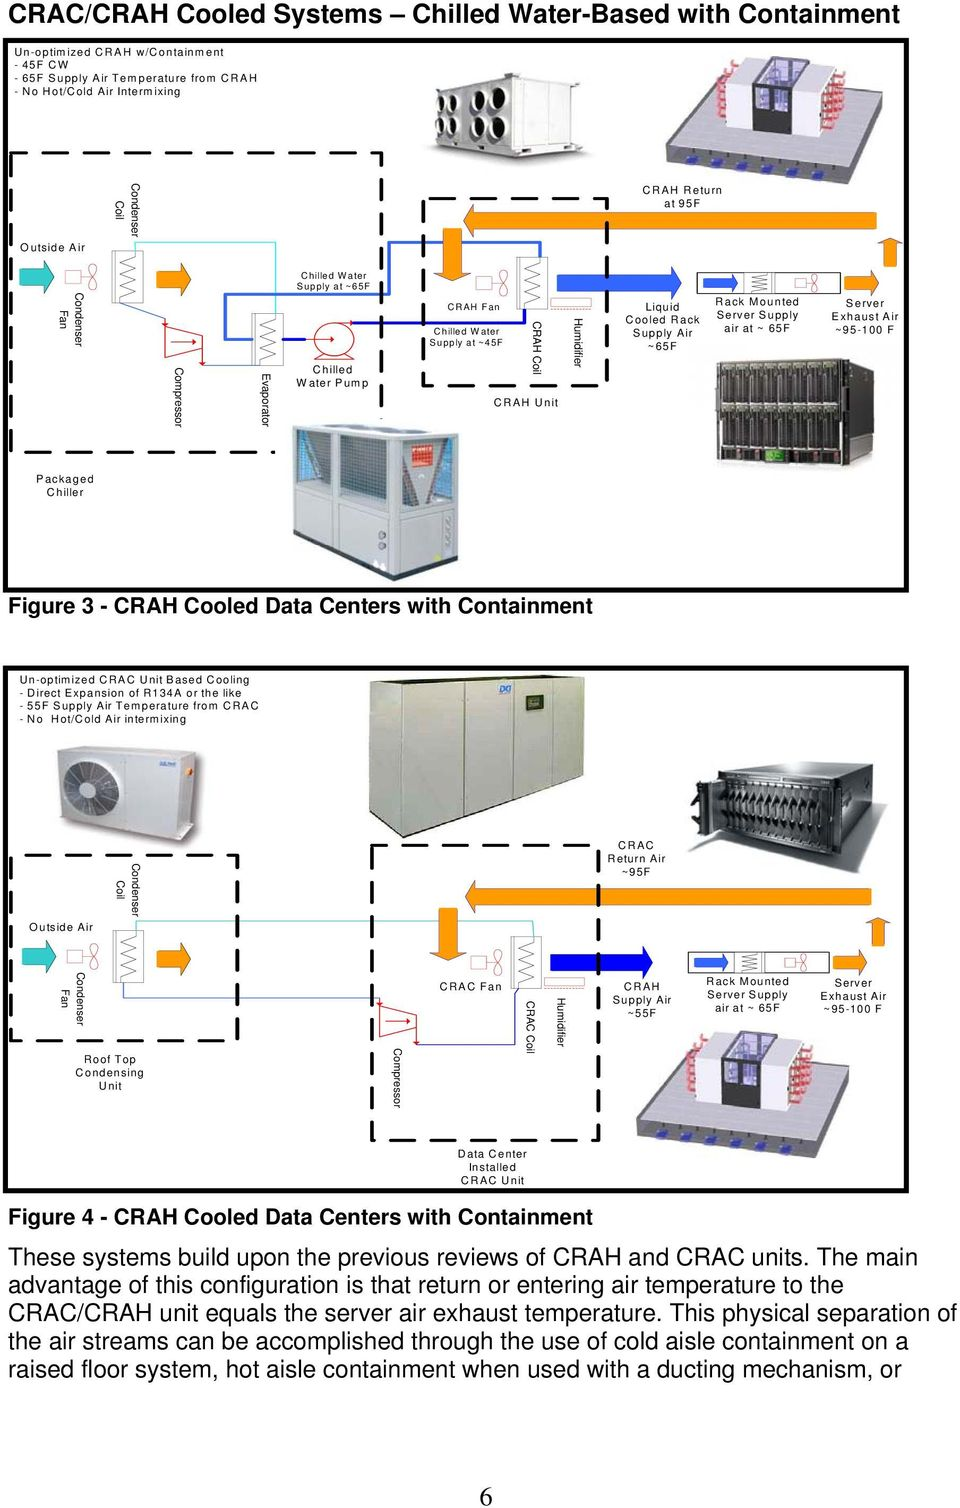 air at ~ 65F Server Exhaust Air ~95-100 F Packaged Chiller Figure 3 - CRAH Cooled Data Centers with Containment Un-optimized CRAC Unit Based Cooling - Direct Expansion of R134A or the like - 55F